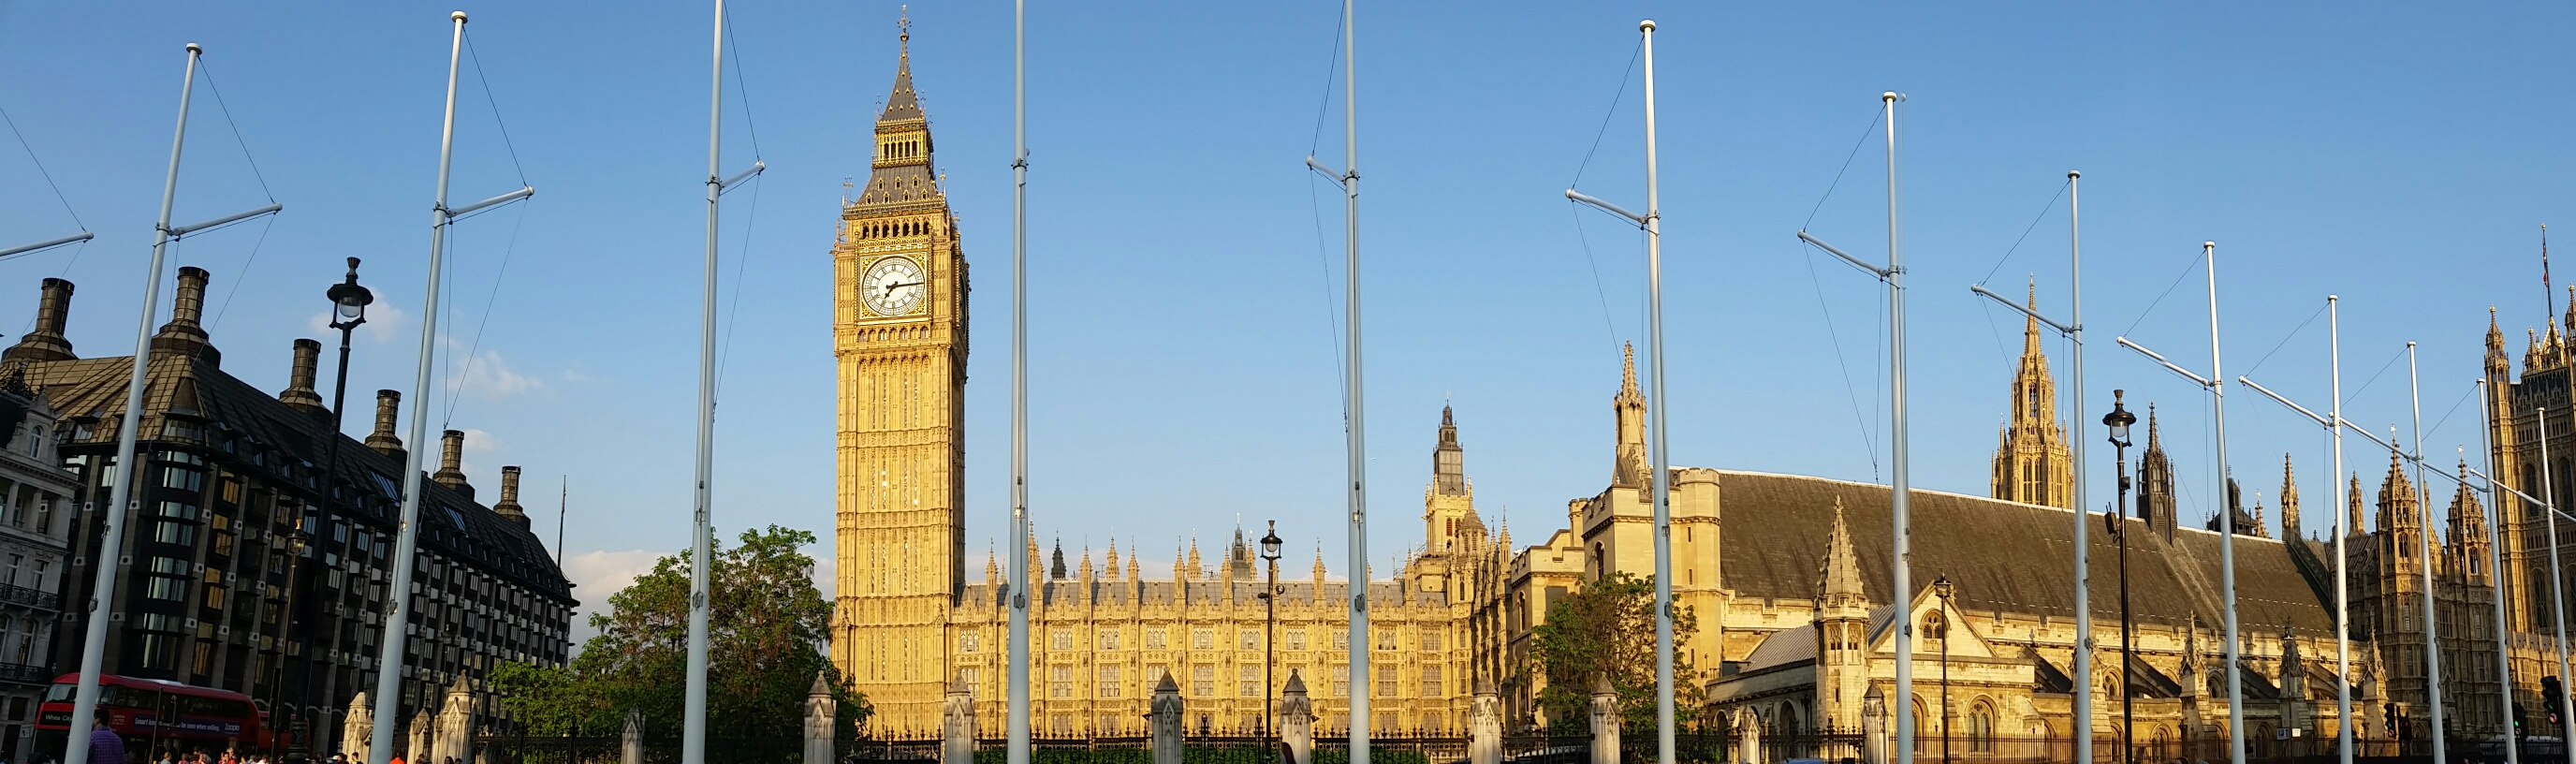 Locals Guide to London